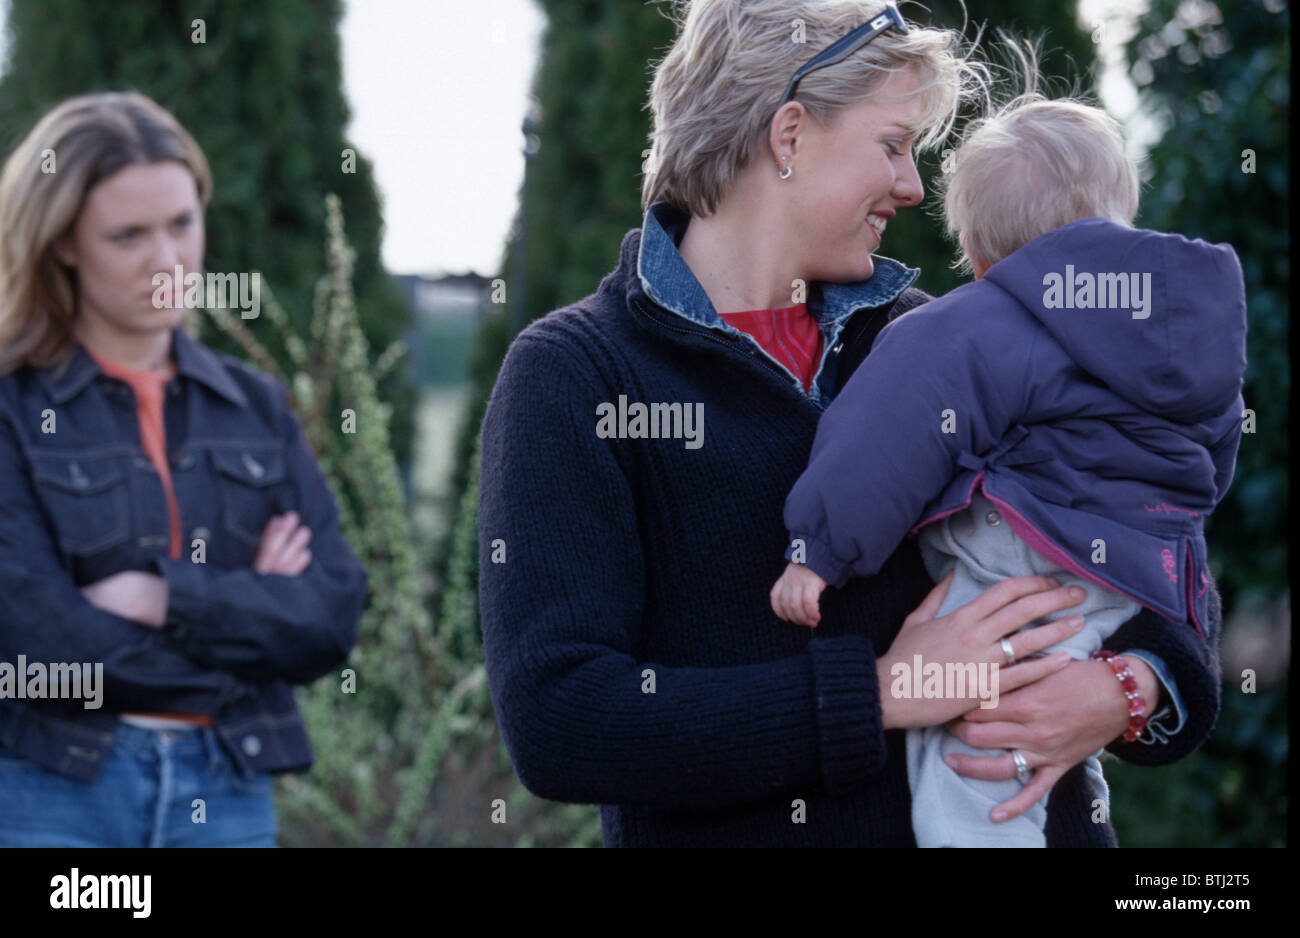 Two women one child three people - Stock Image